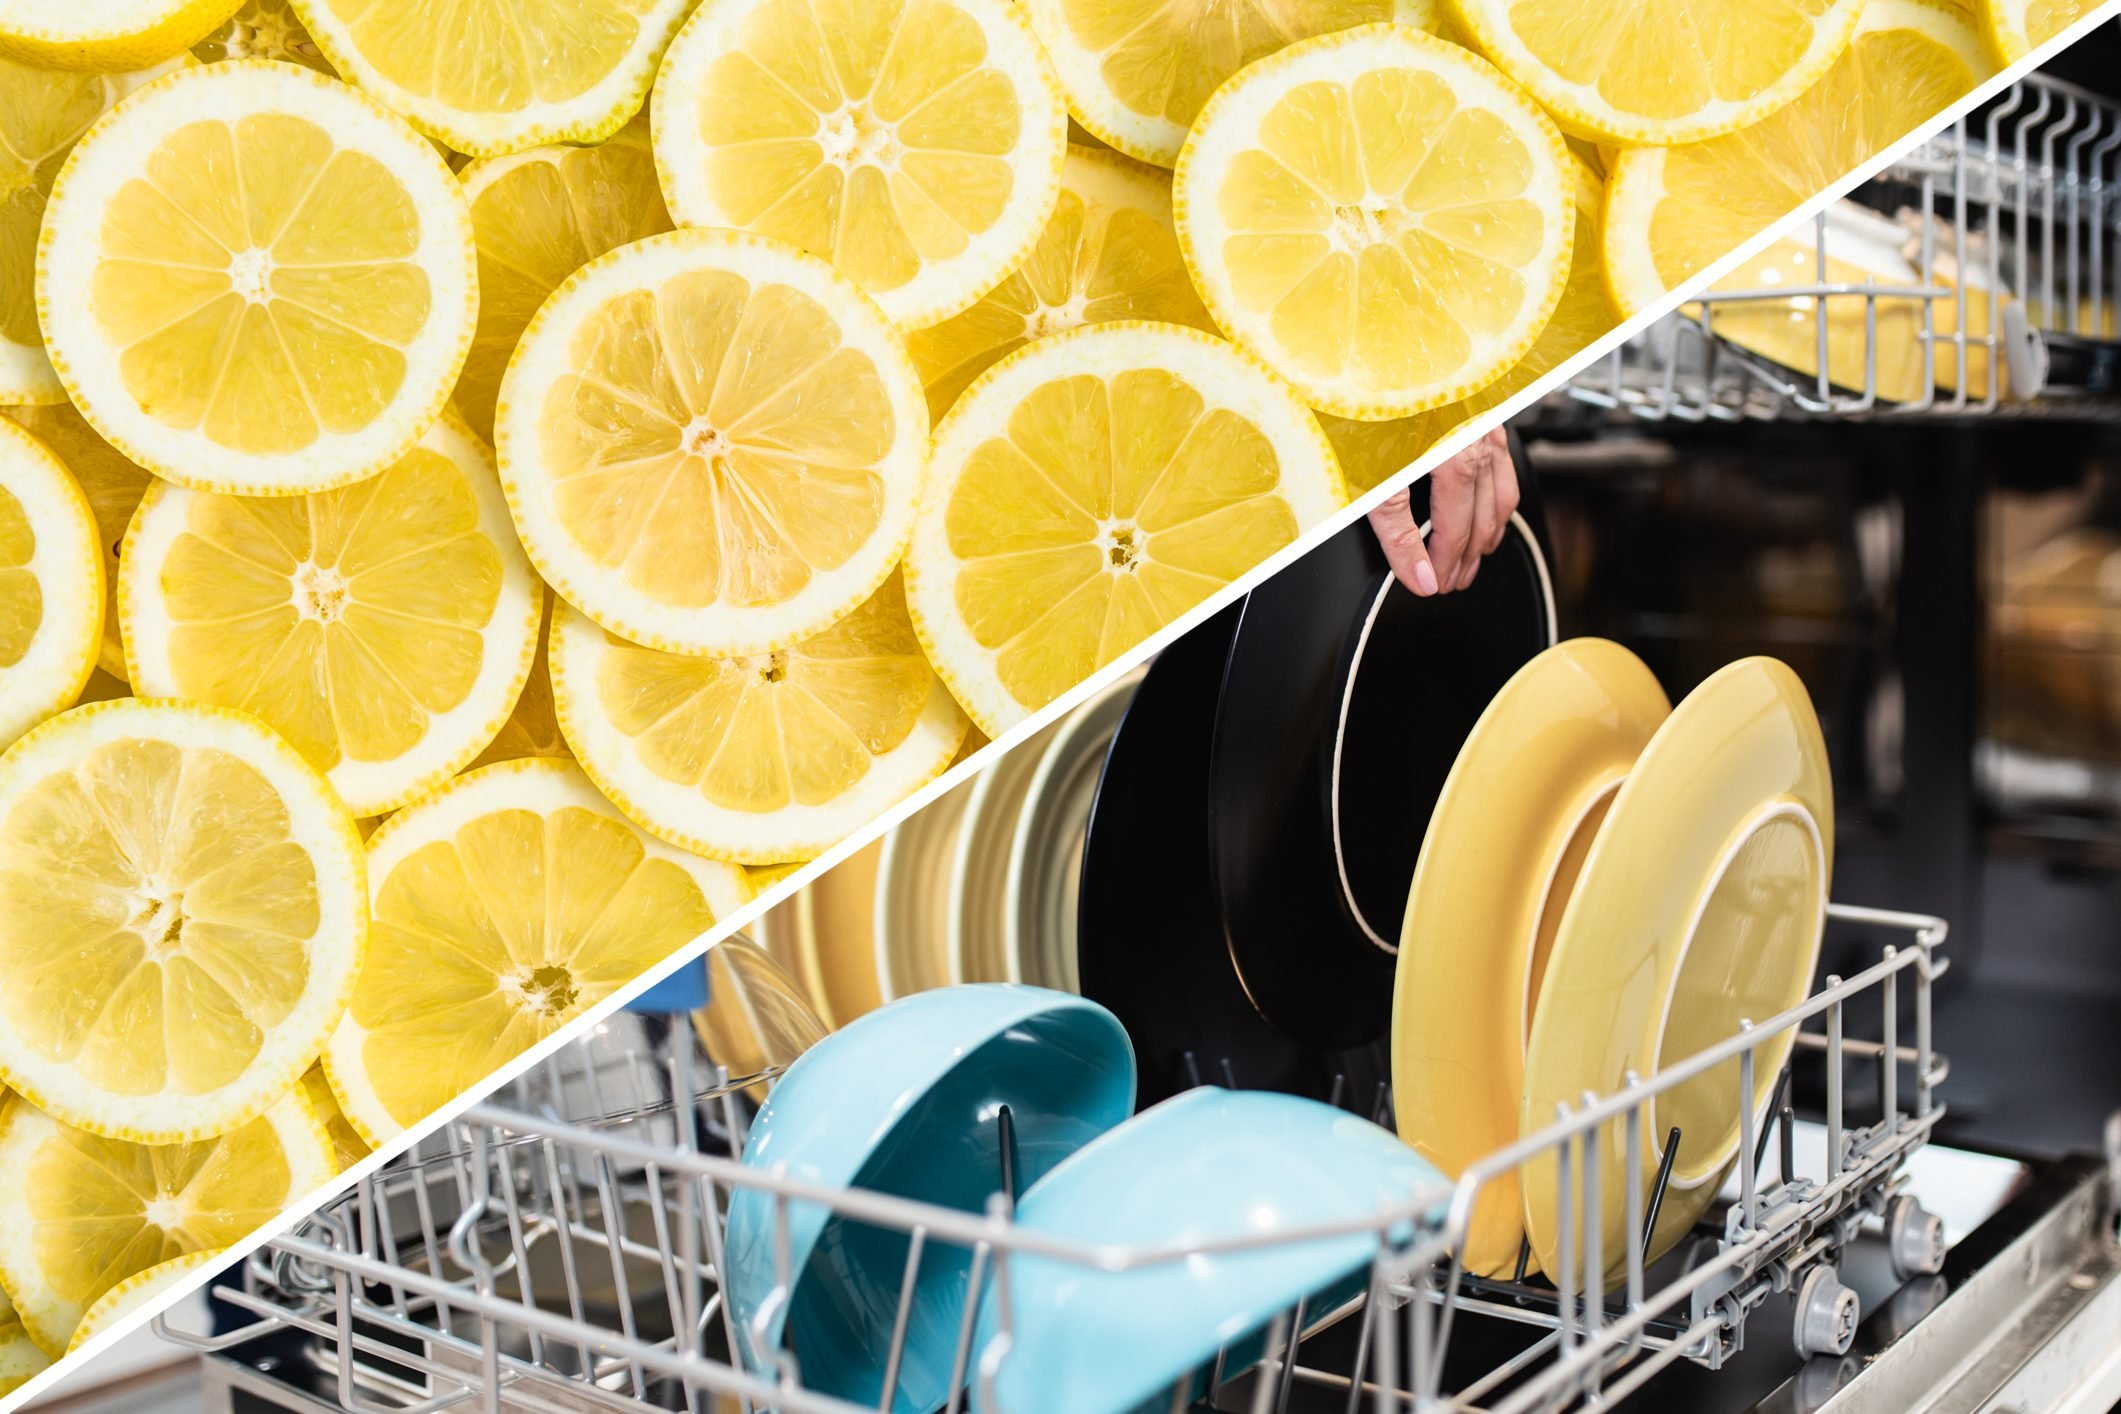 dishwasher clean lemon uses